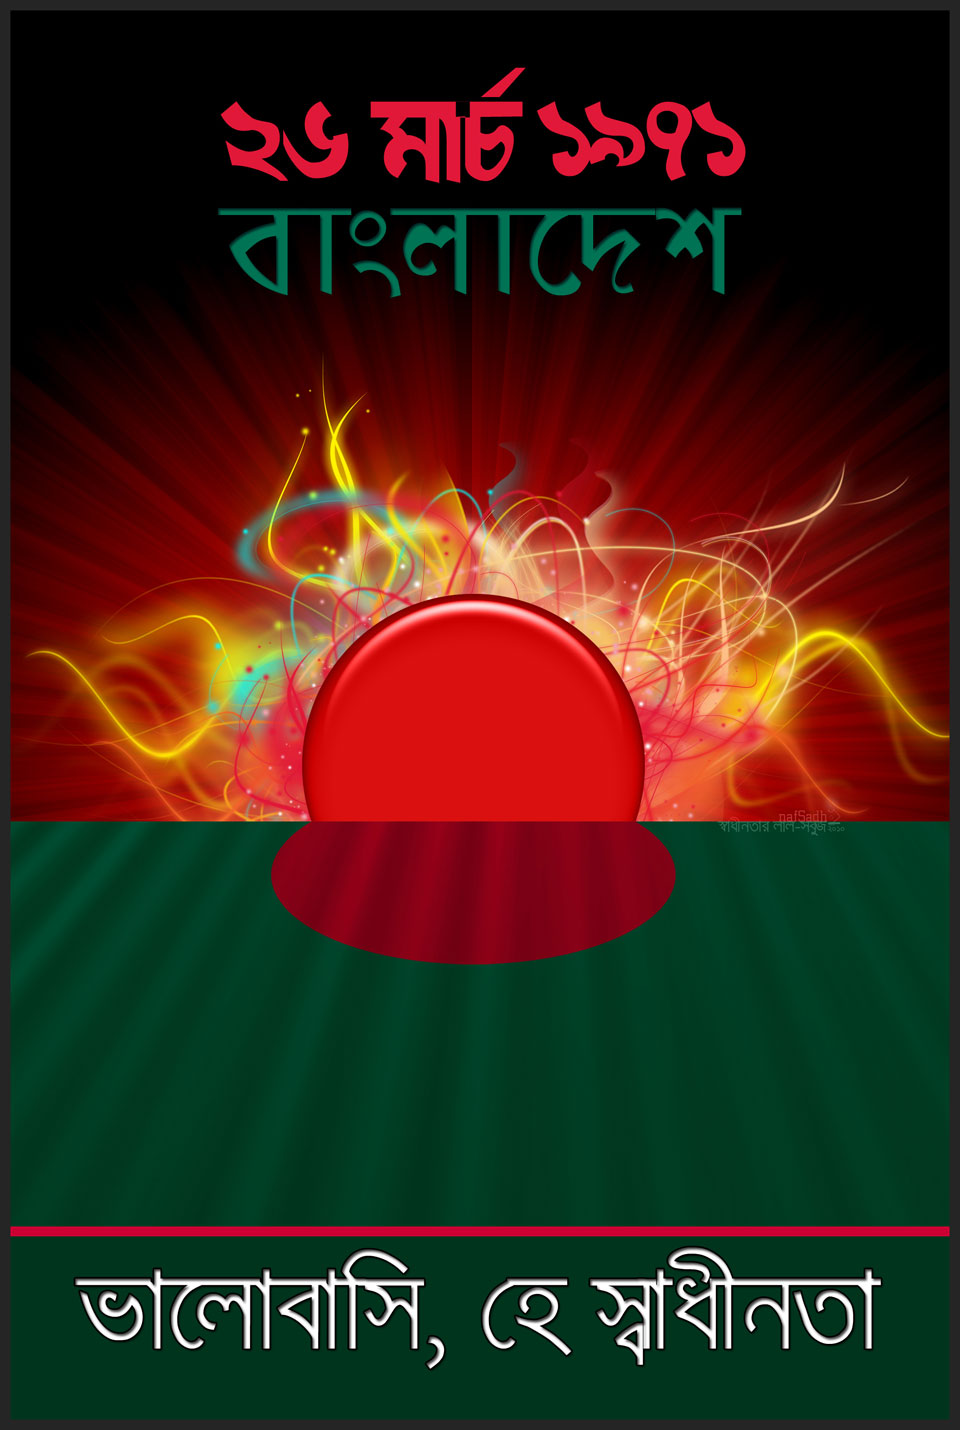 Red and Green of Independence